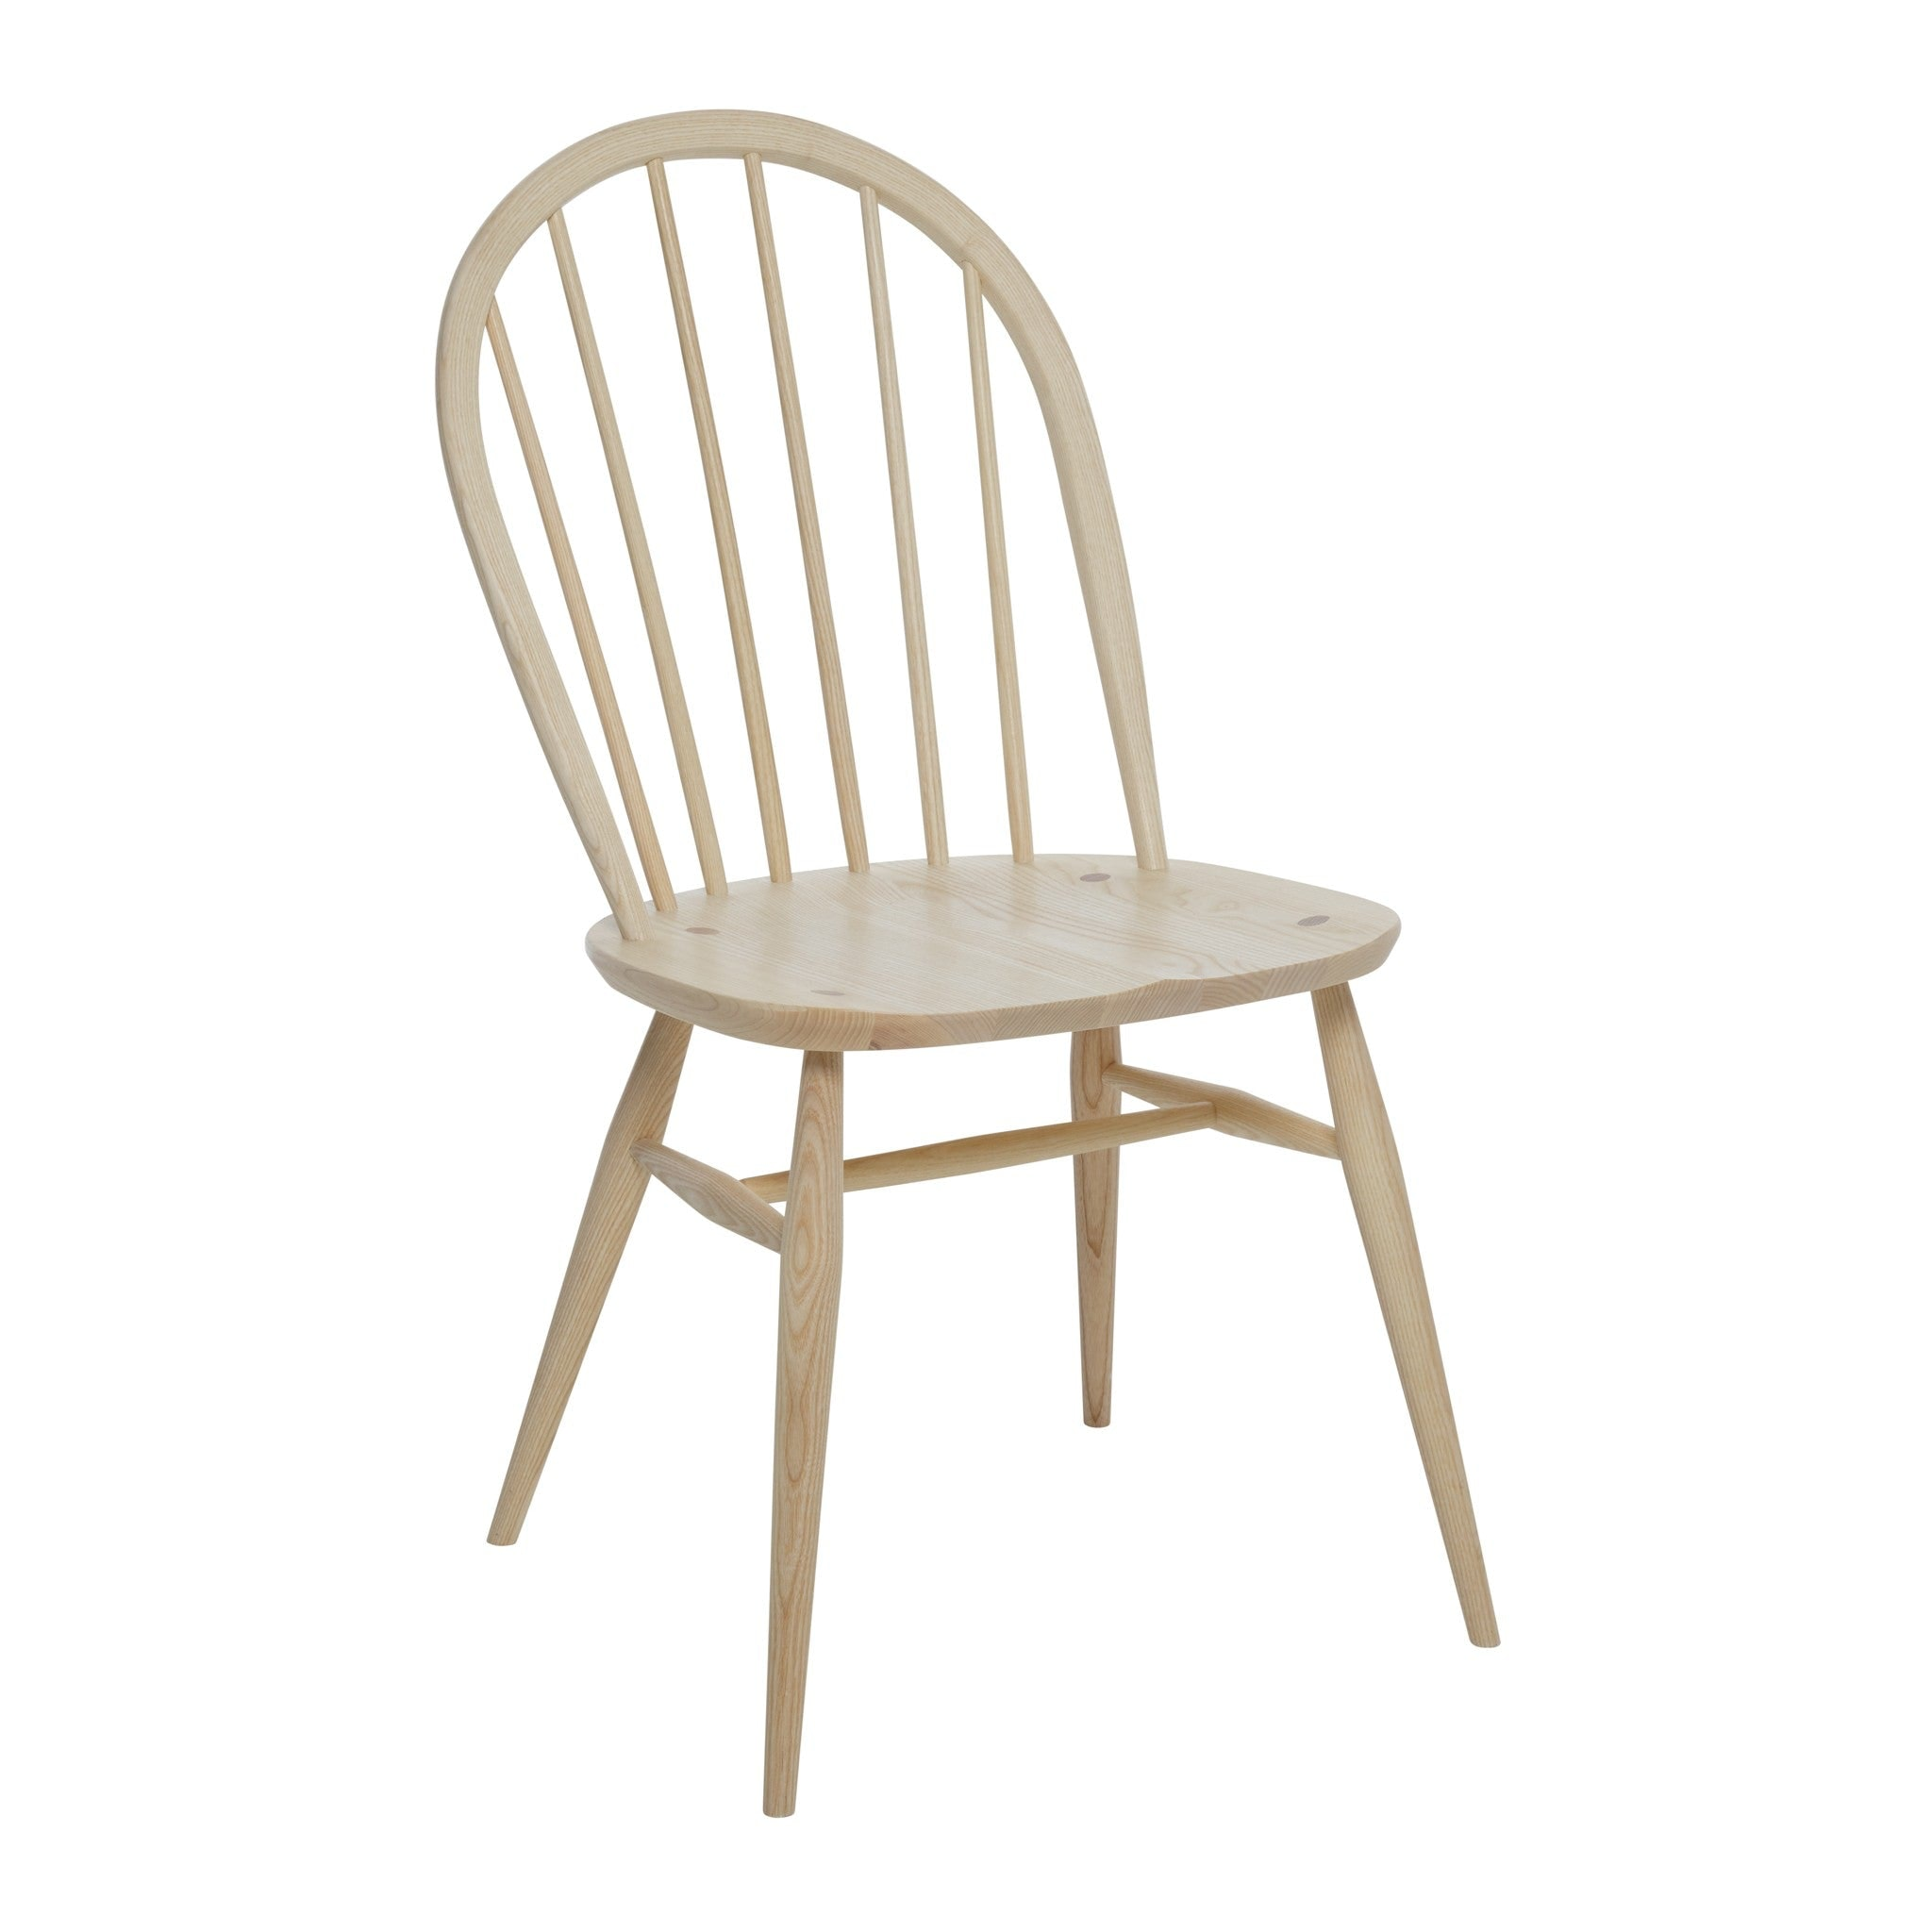 Originals Windsor Chair by Ercol